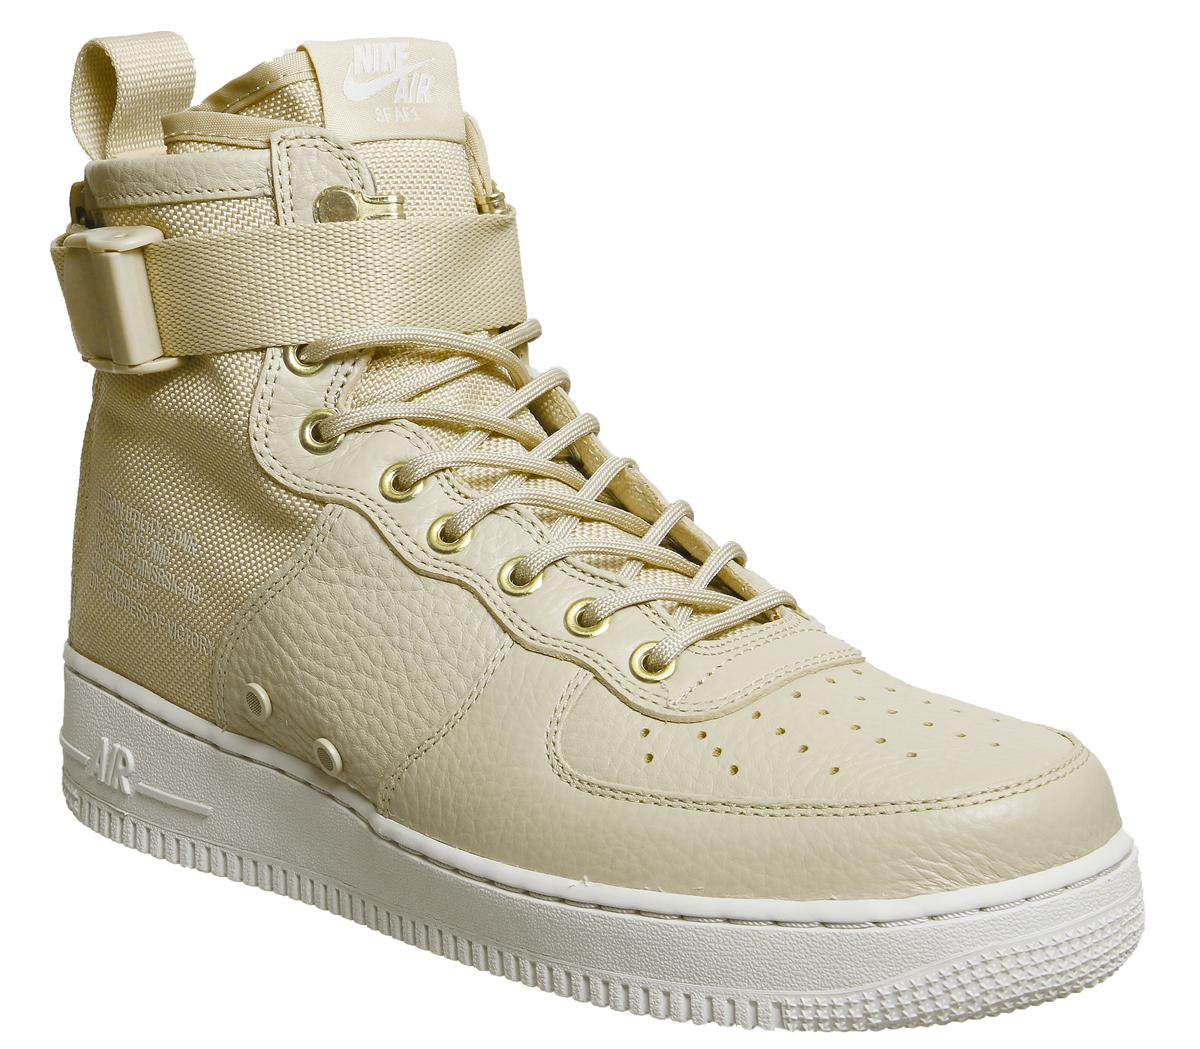 Men's Shoes Nike SF AF1 Mid Special Field Air Force 1 Zip